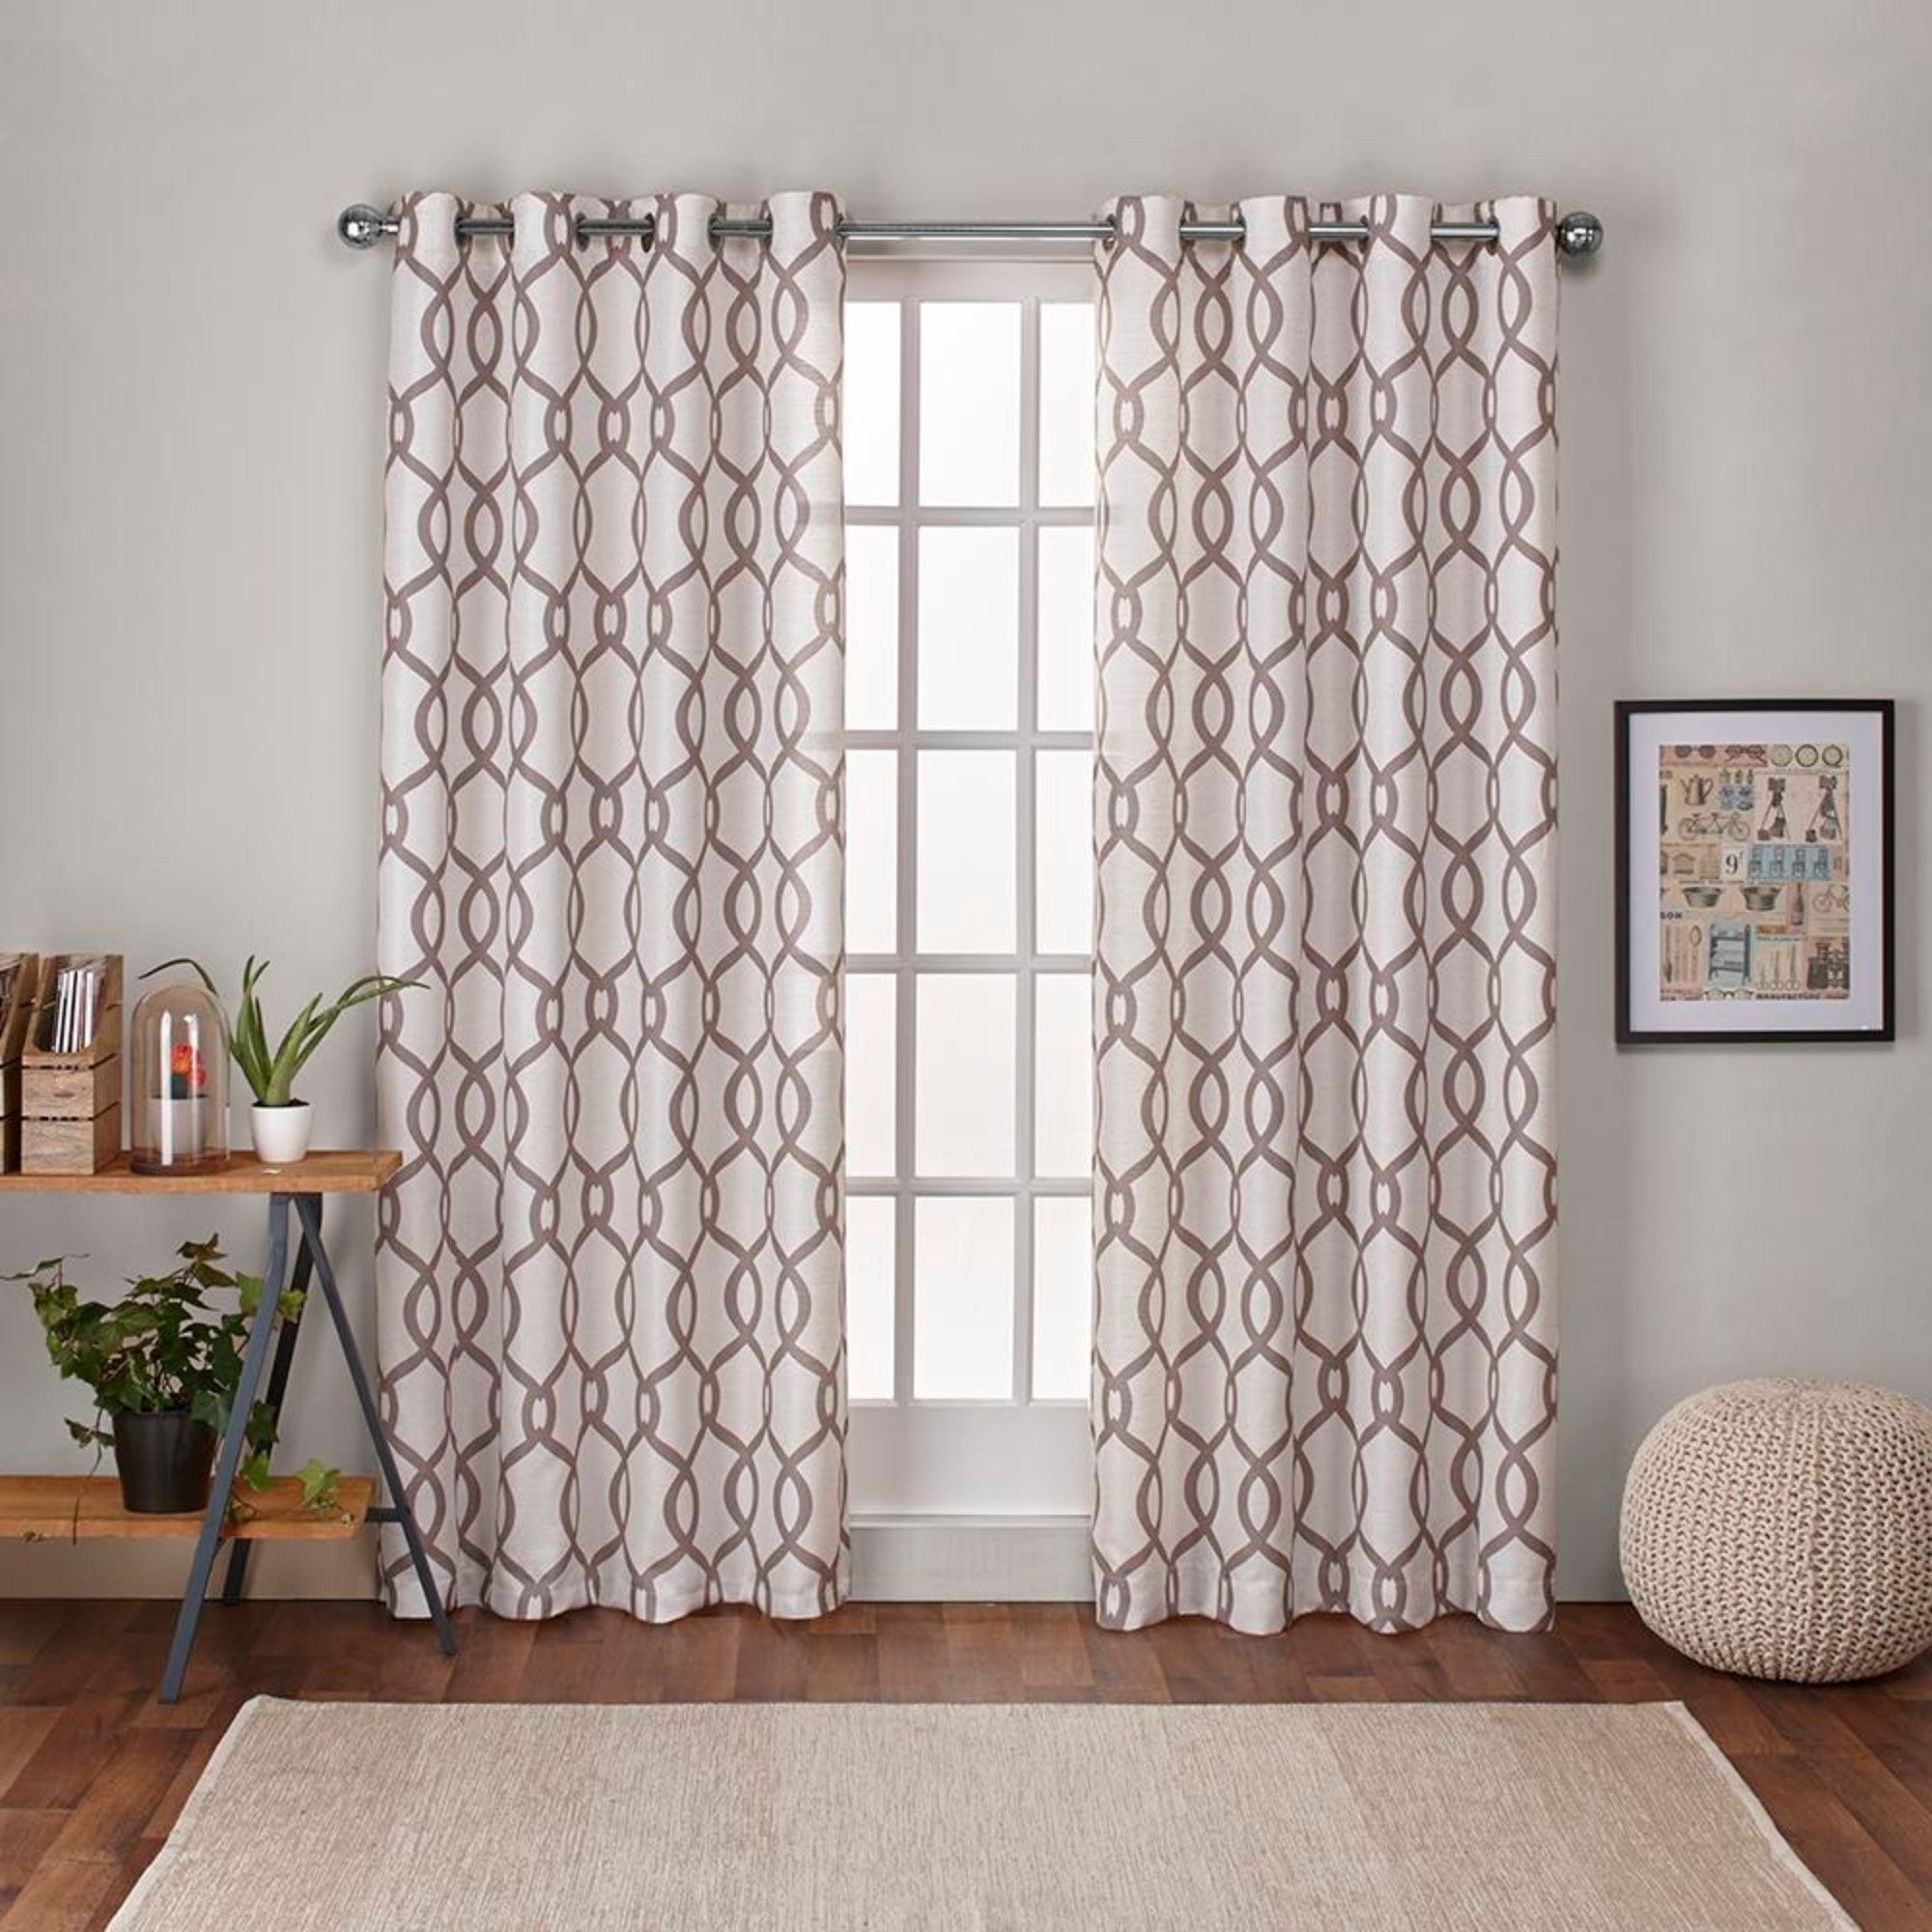 "Ati Home Kochi Linen Blend Window Grommet Top Curtain Panel Pair 108"" L In Blush (as Is Item) Throughout Kochi Linen Blend Window Grommet Top Curtain Panel Pairs (View 3 of 20)"